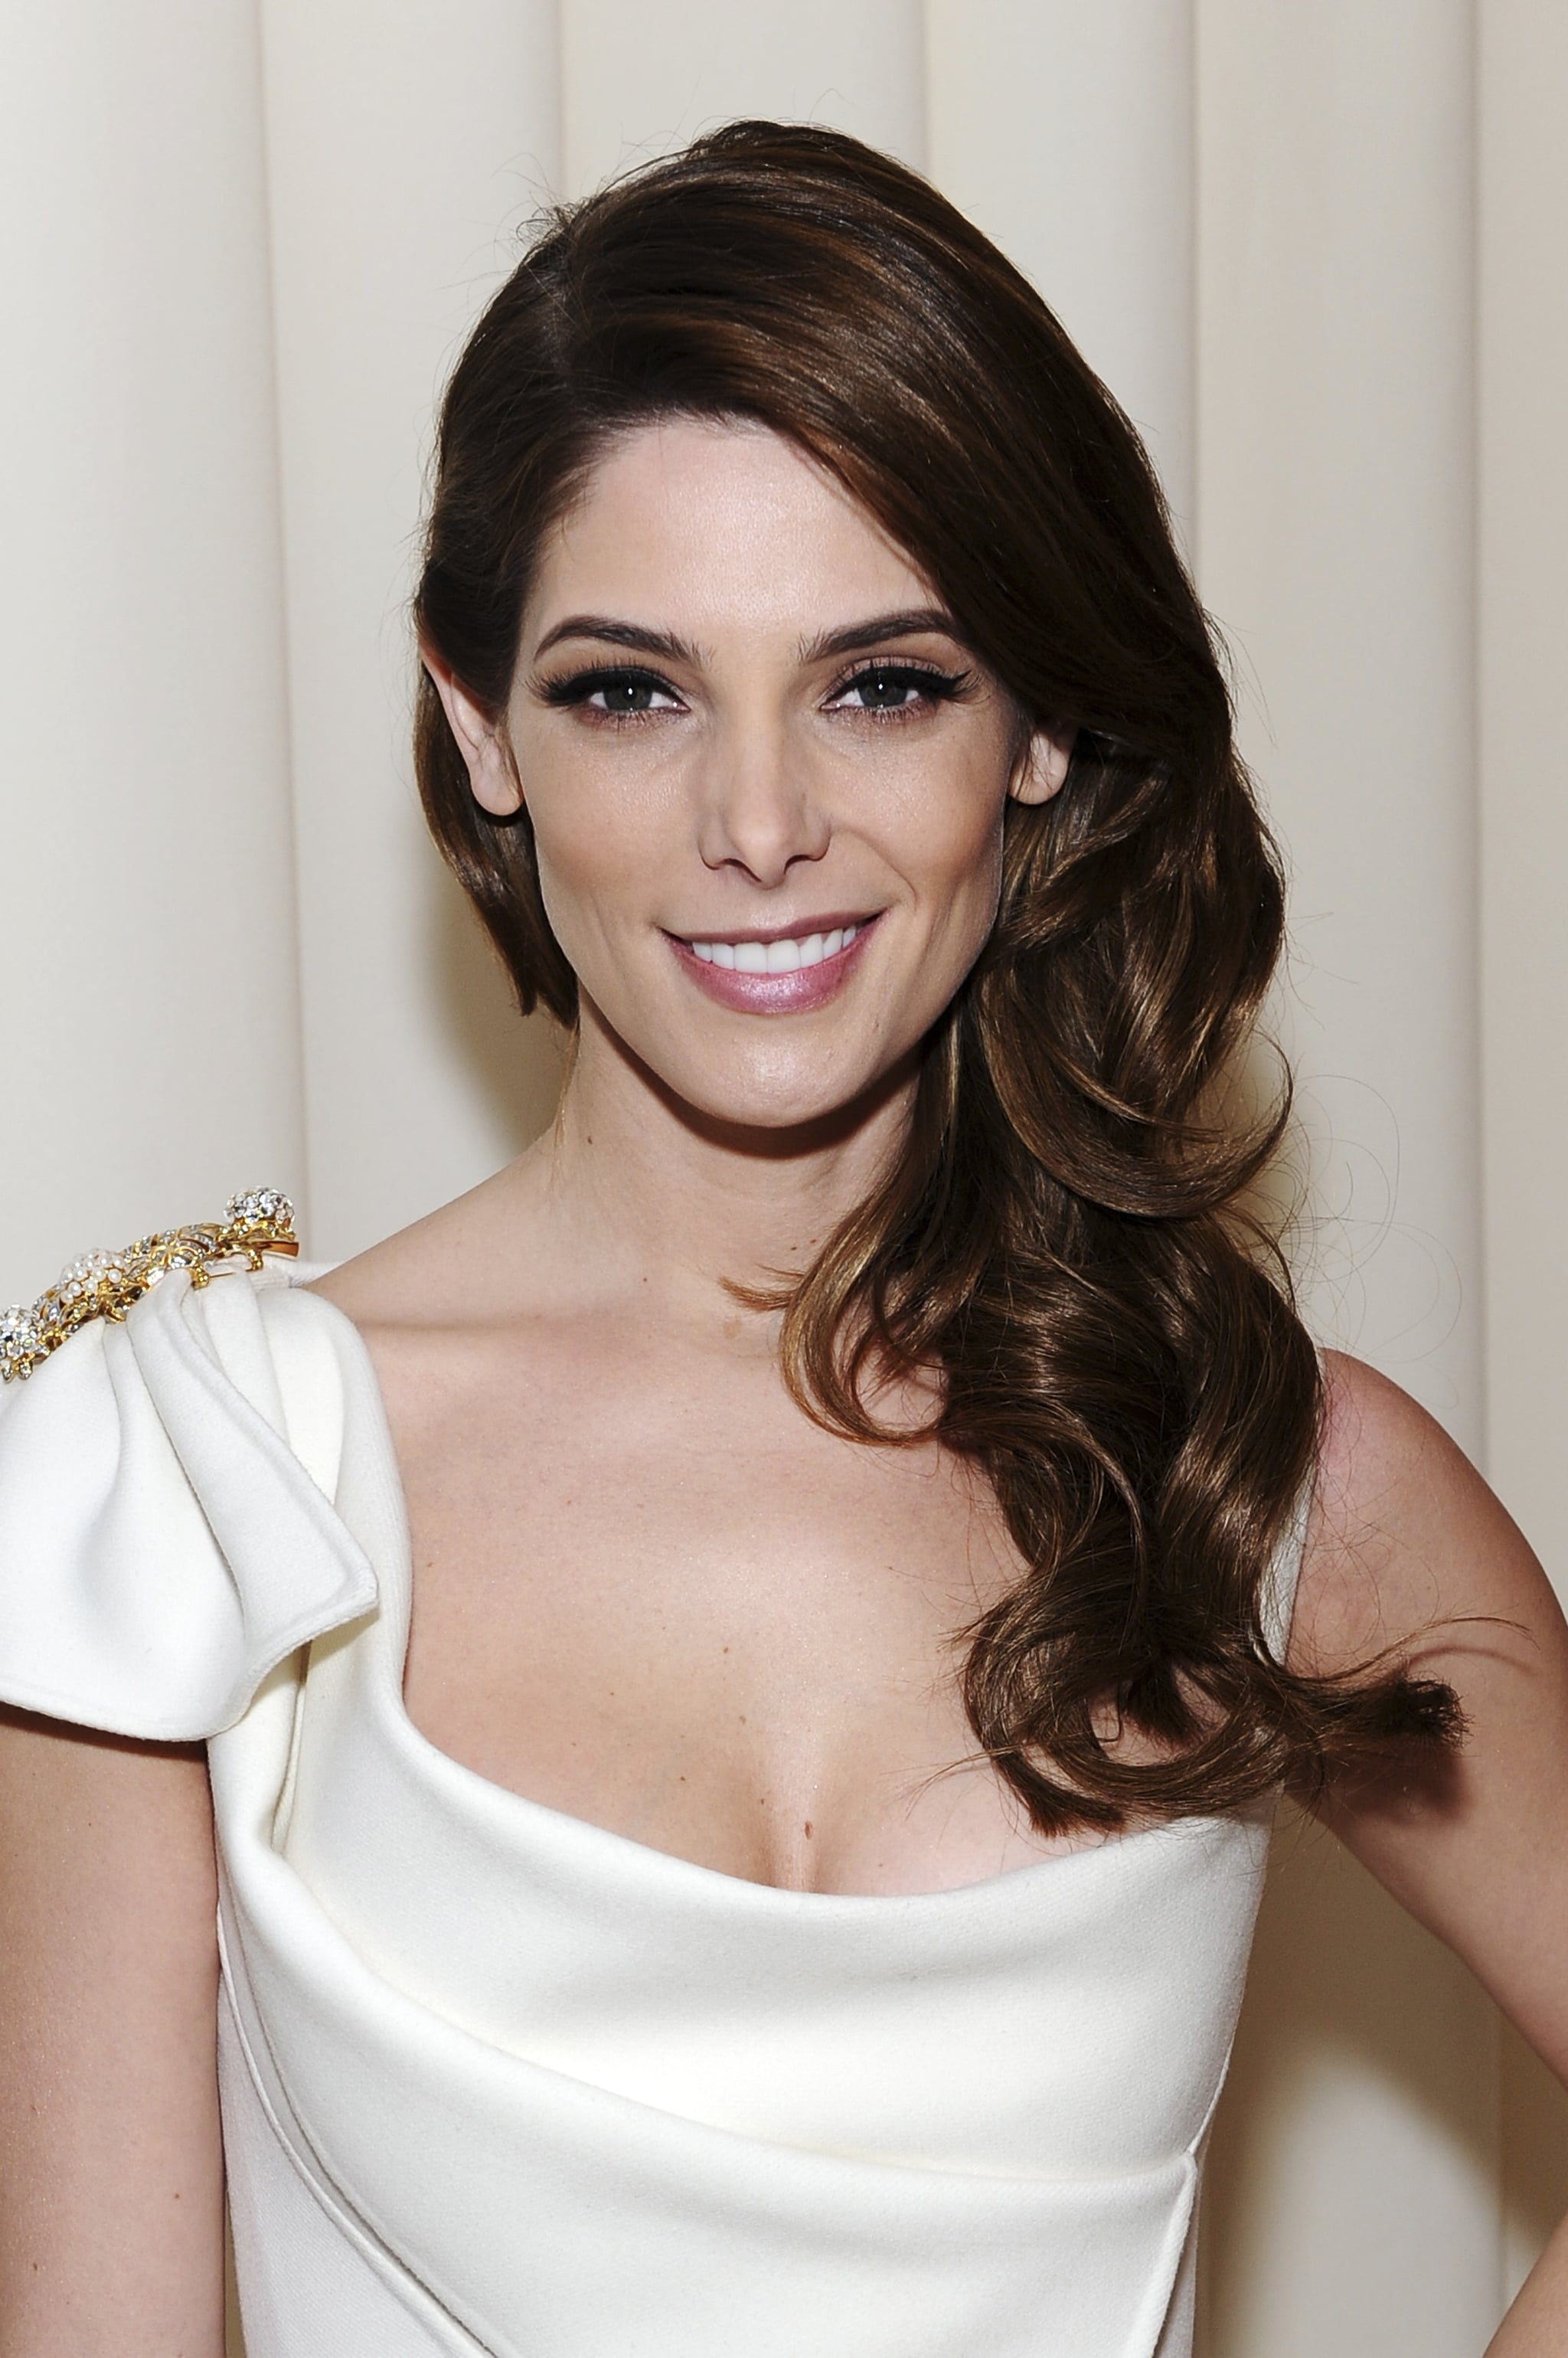 Ashley Greene at Elton John Party